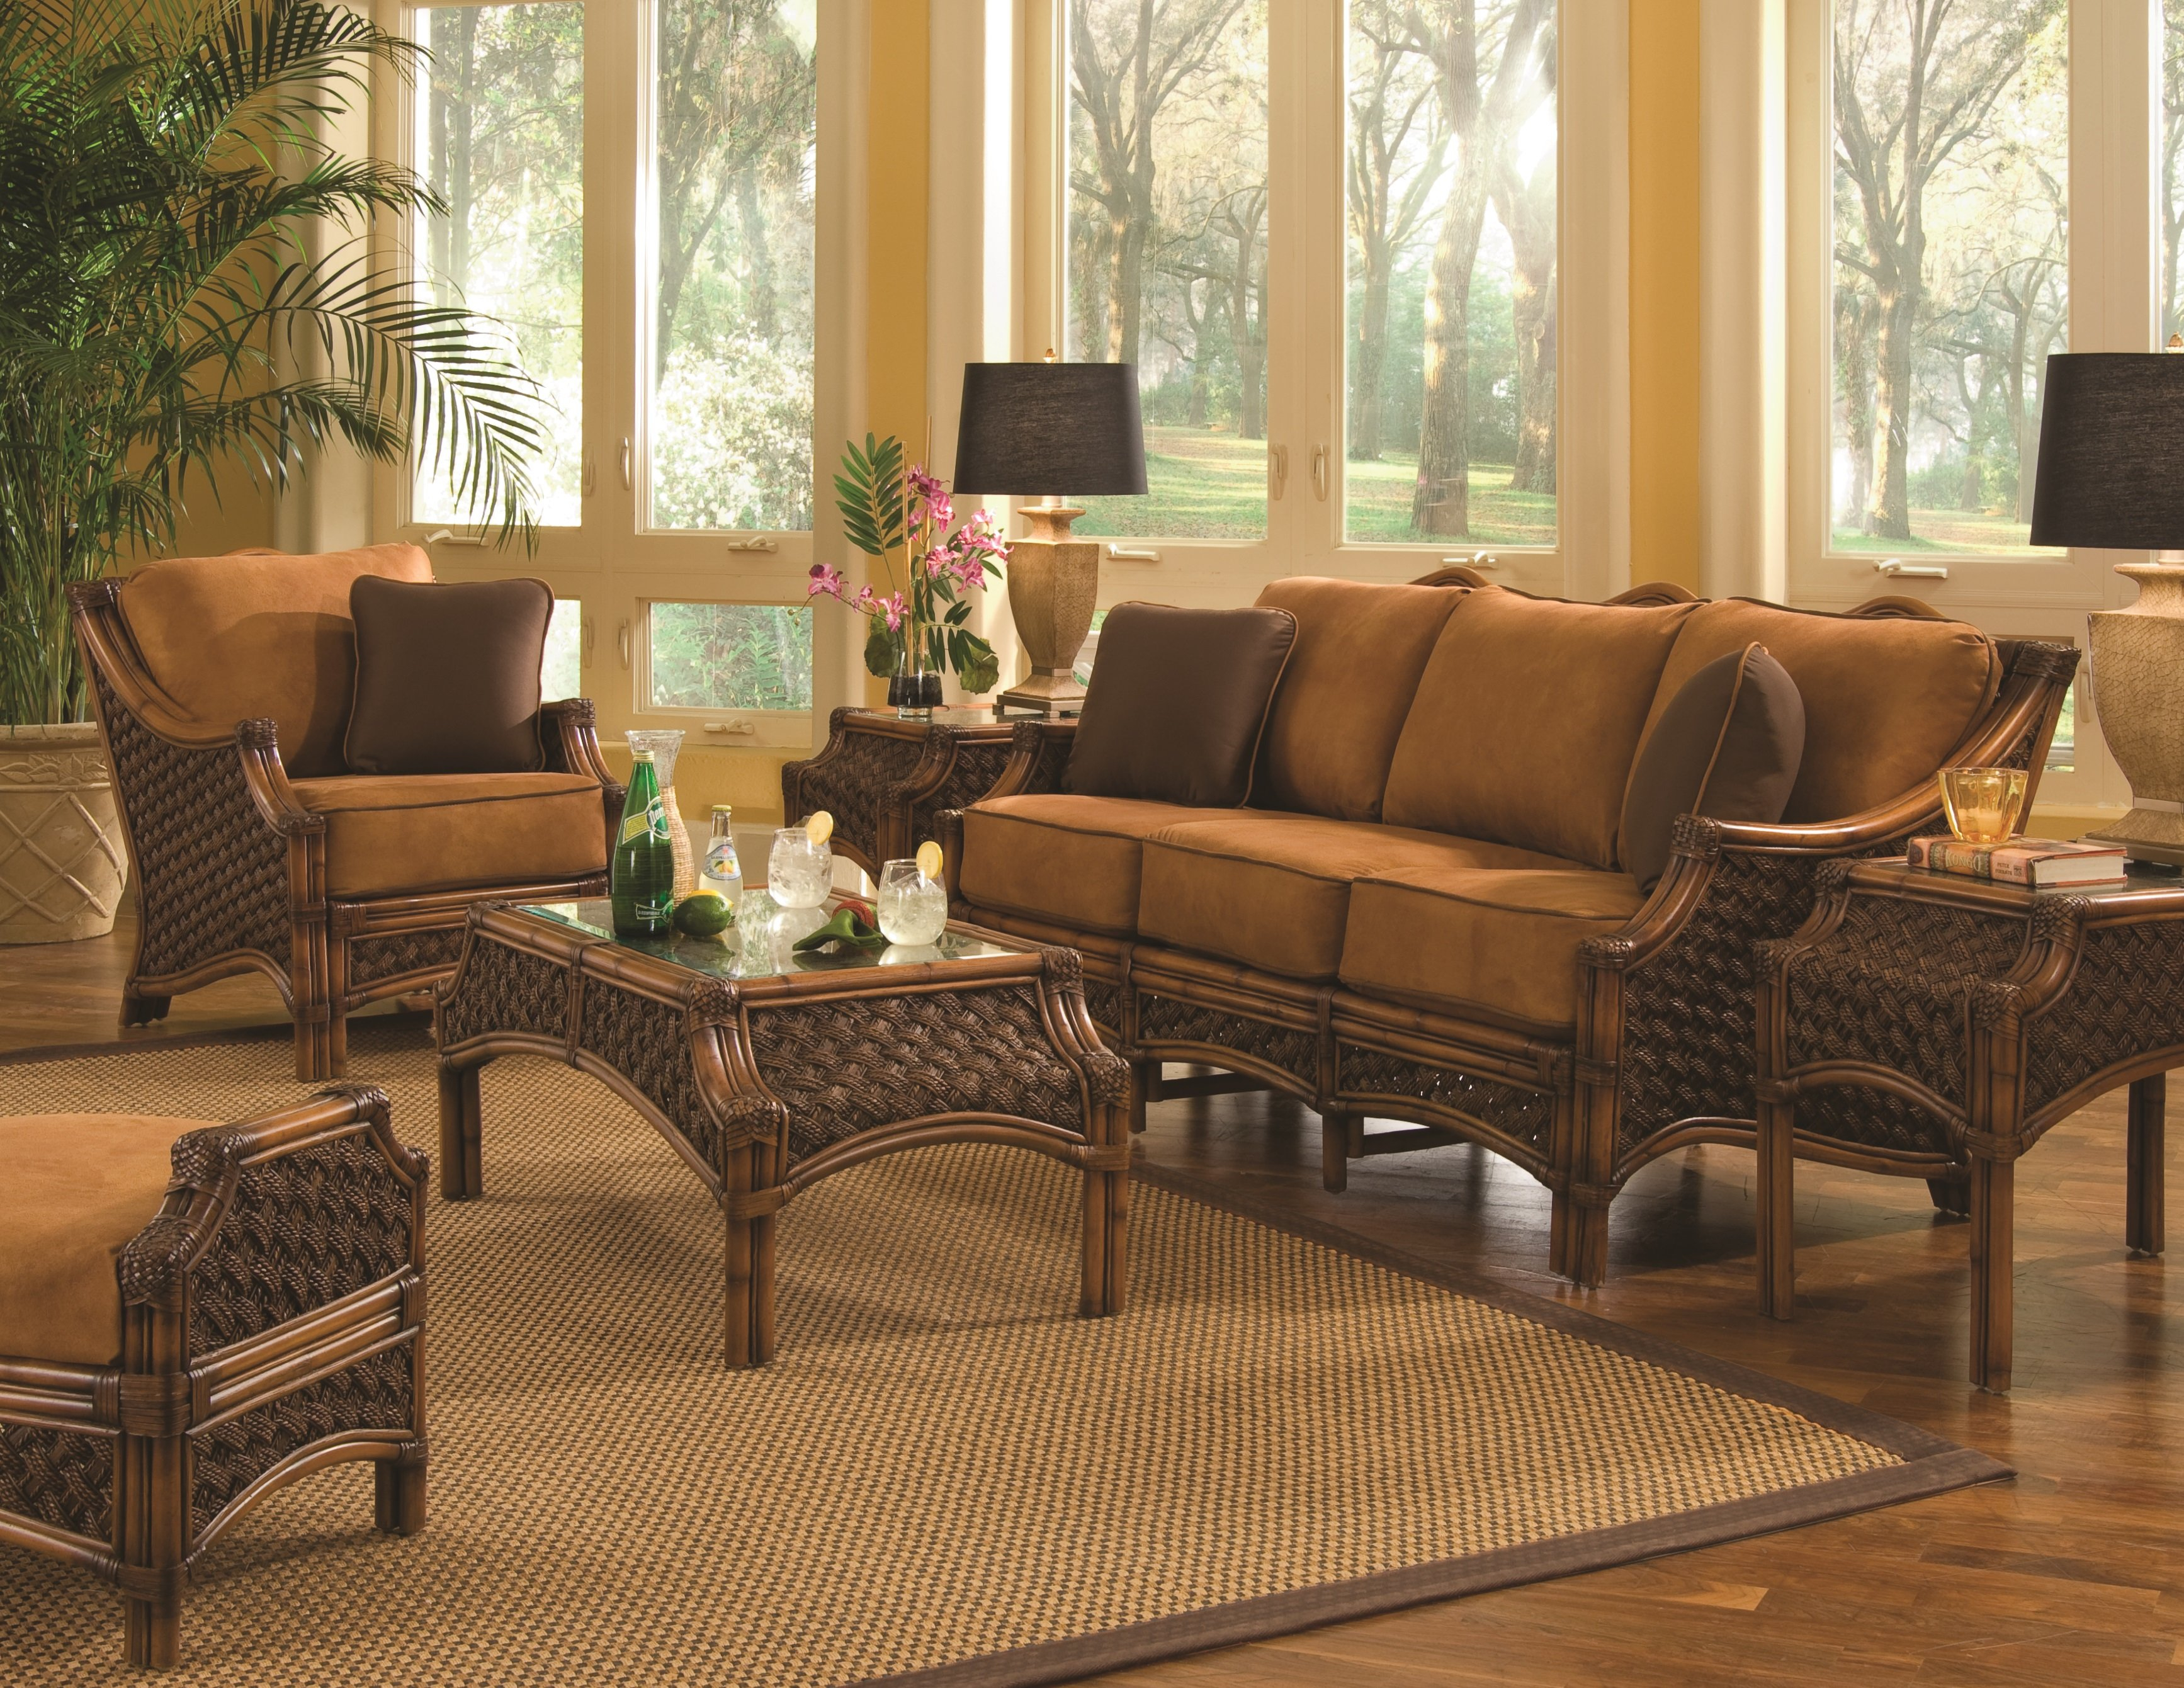 Bay Isle Home Schmitz 5 Piece Living Room Set Wayfair for 5 Piece Living Room Set